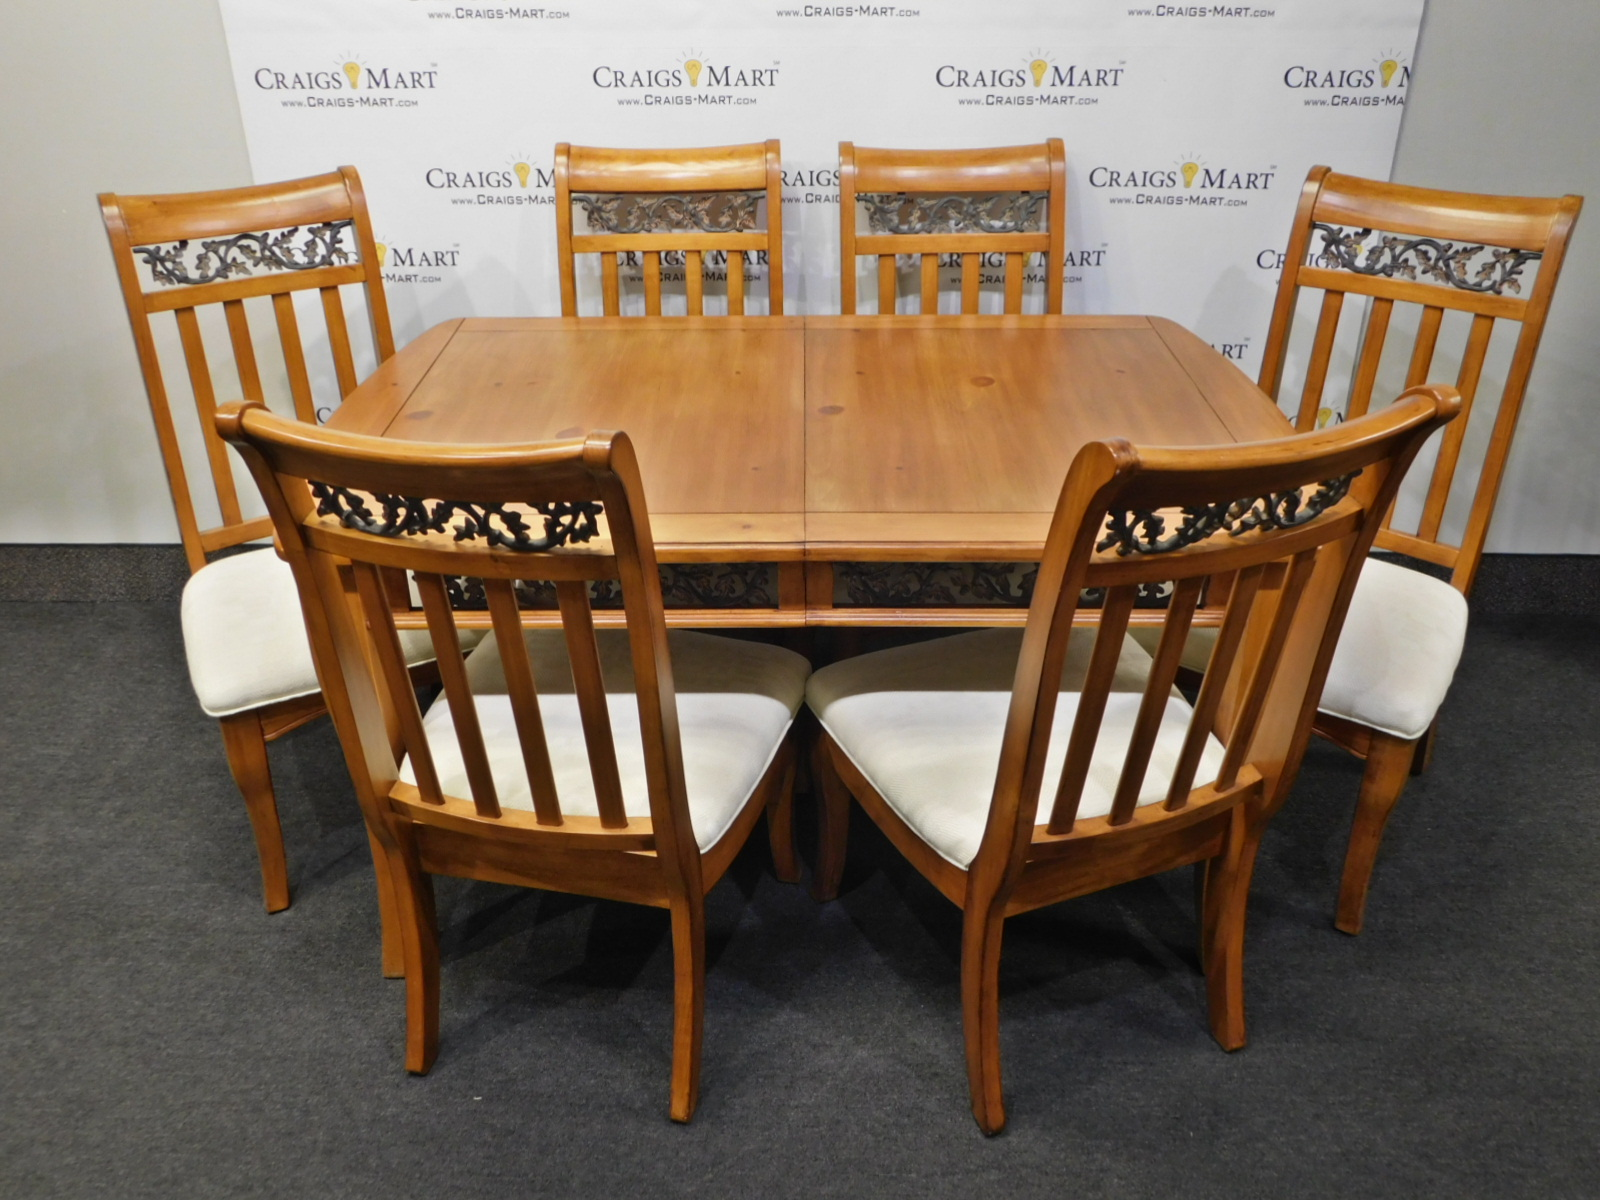 Dining Table 8 Chairs Dining Table With 8 Chairs And Leaf